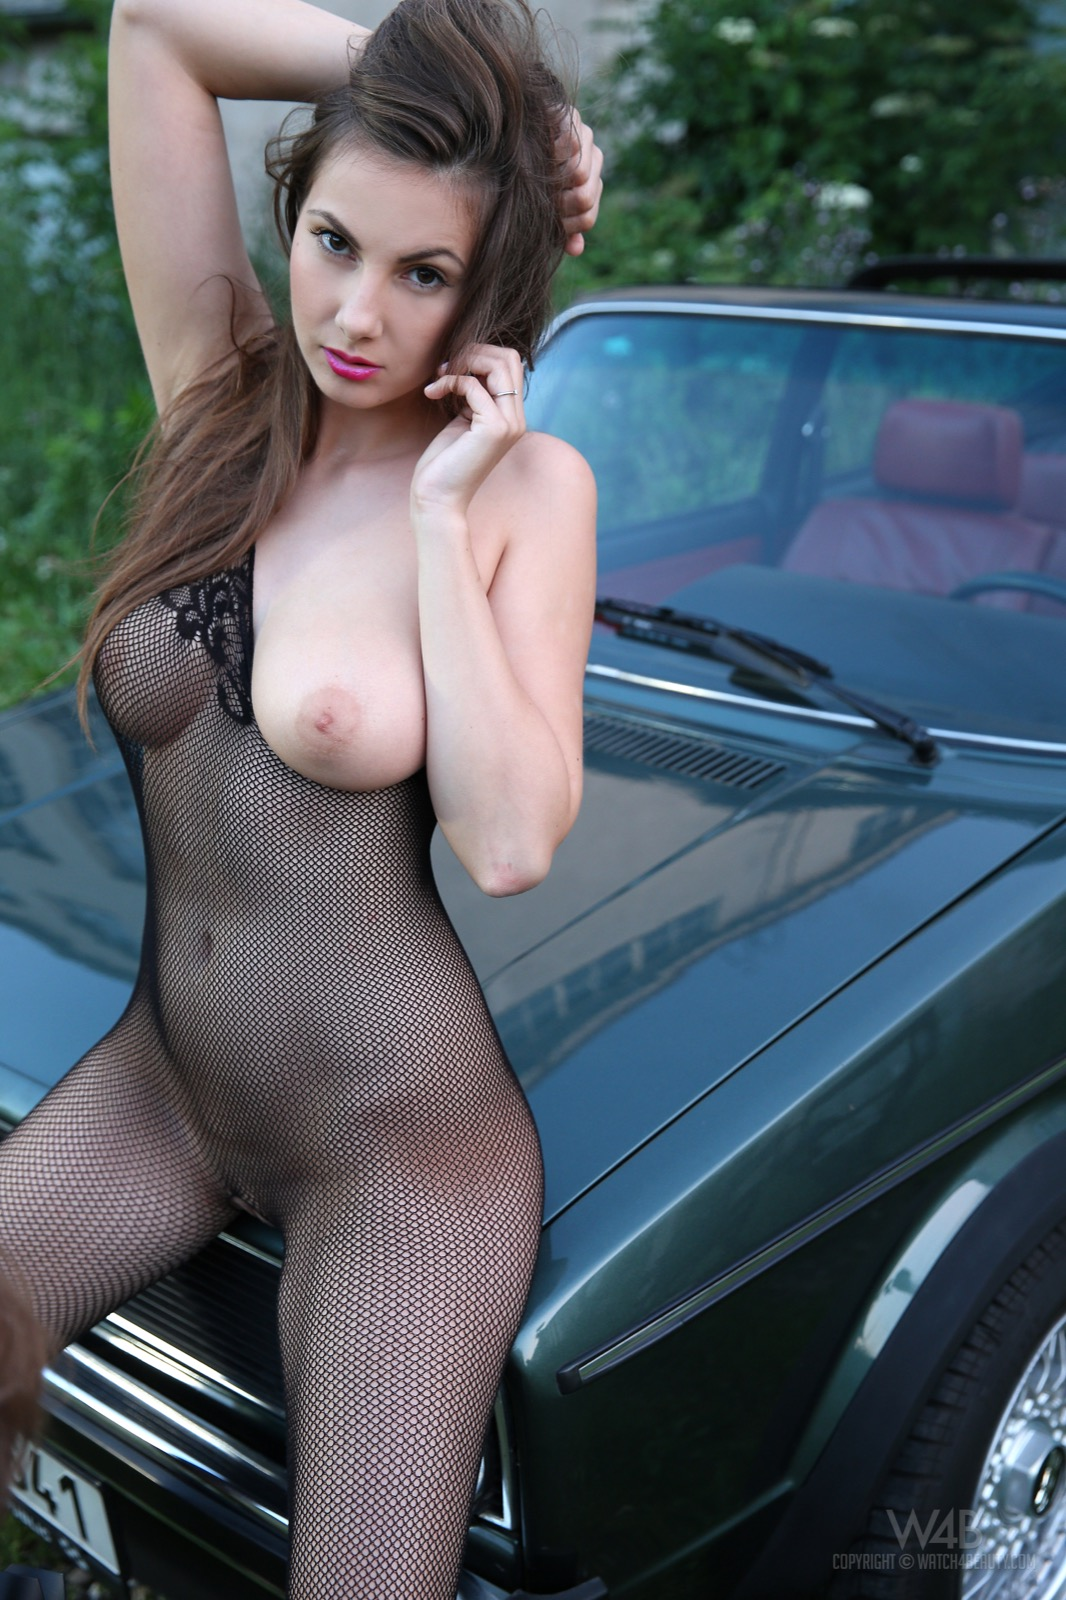 The same nude girl full body fishnet